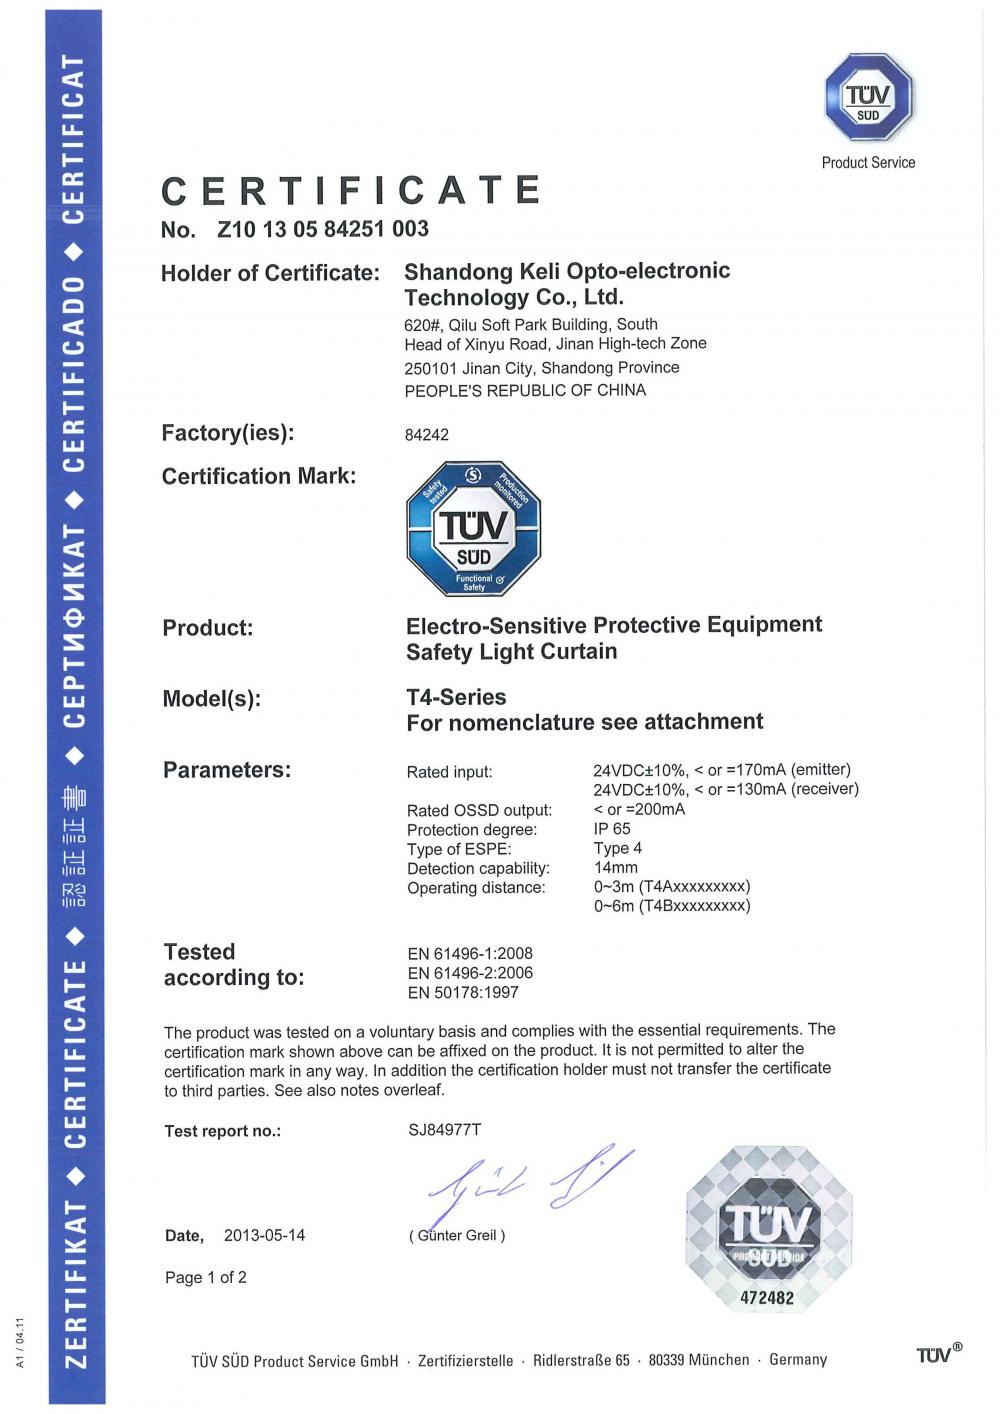 certificate of TUV functional safety